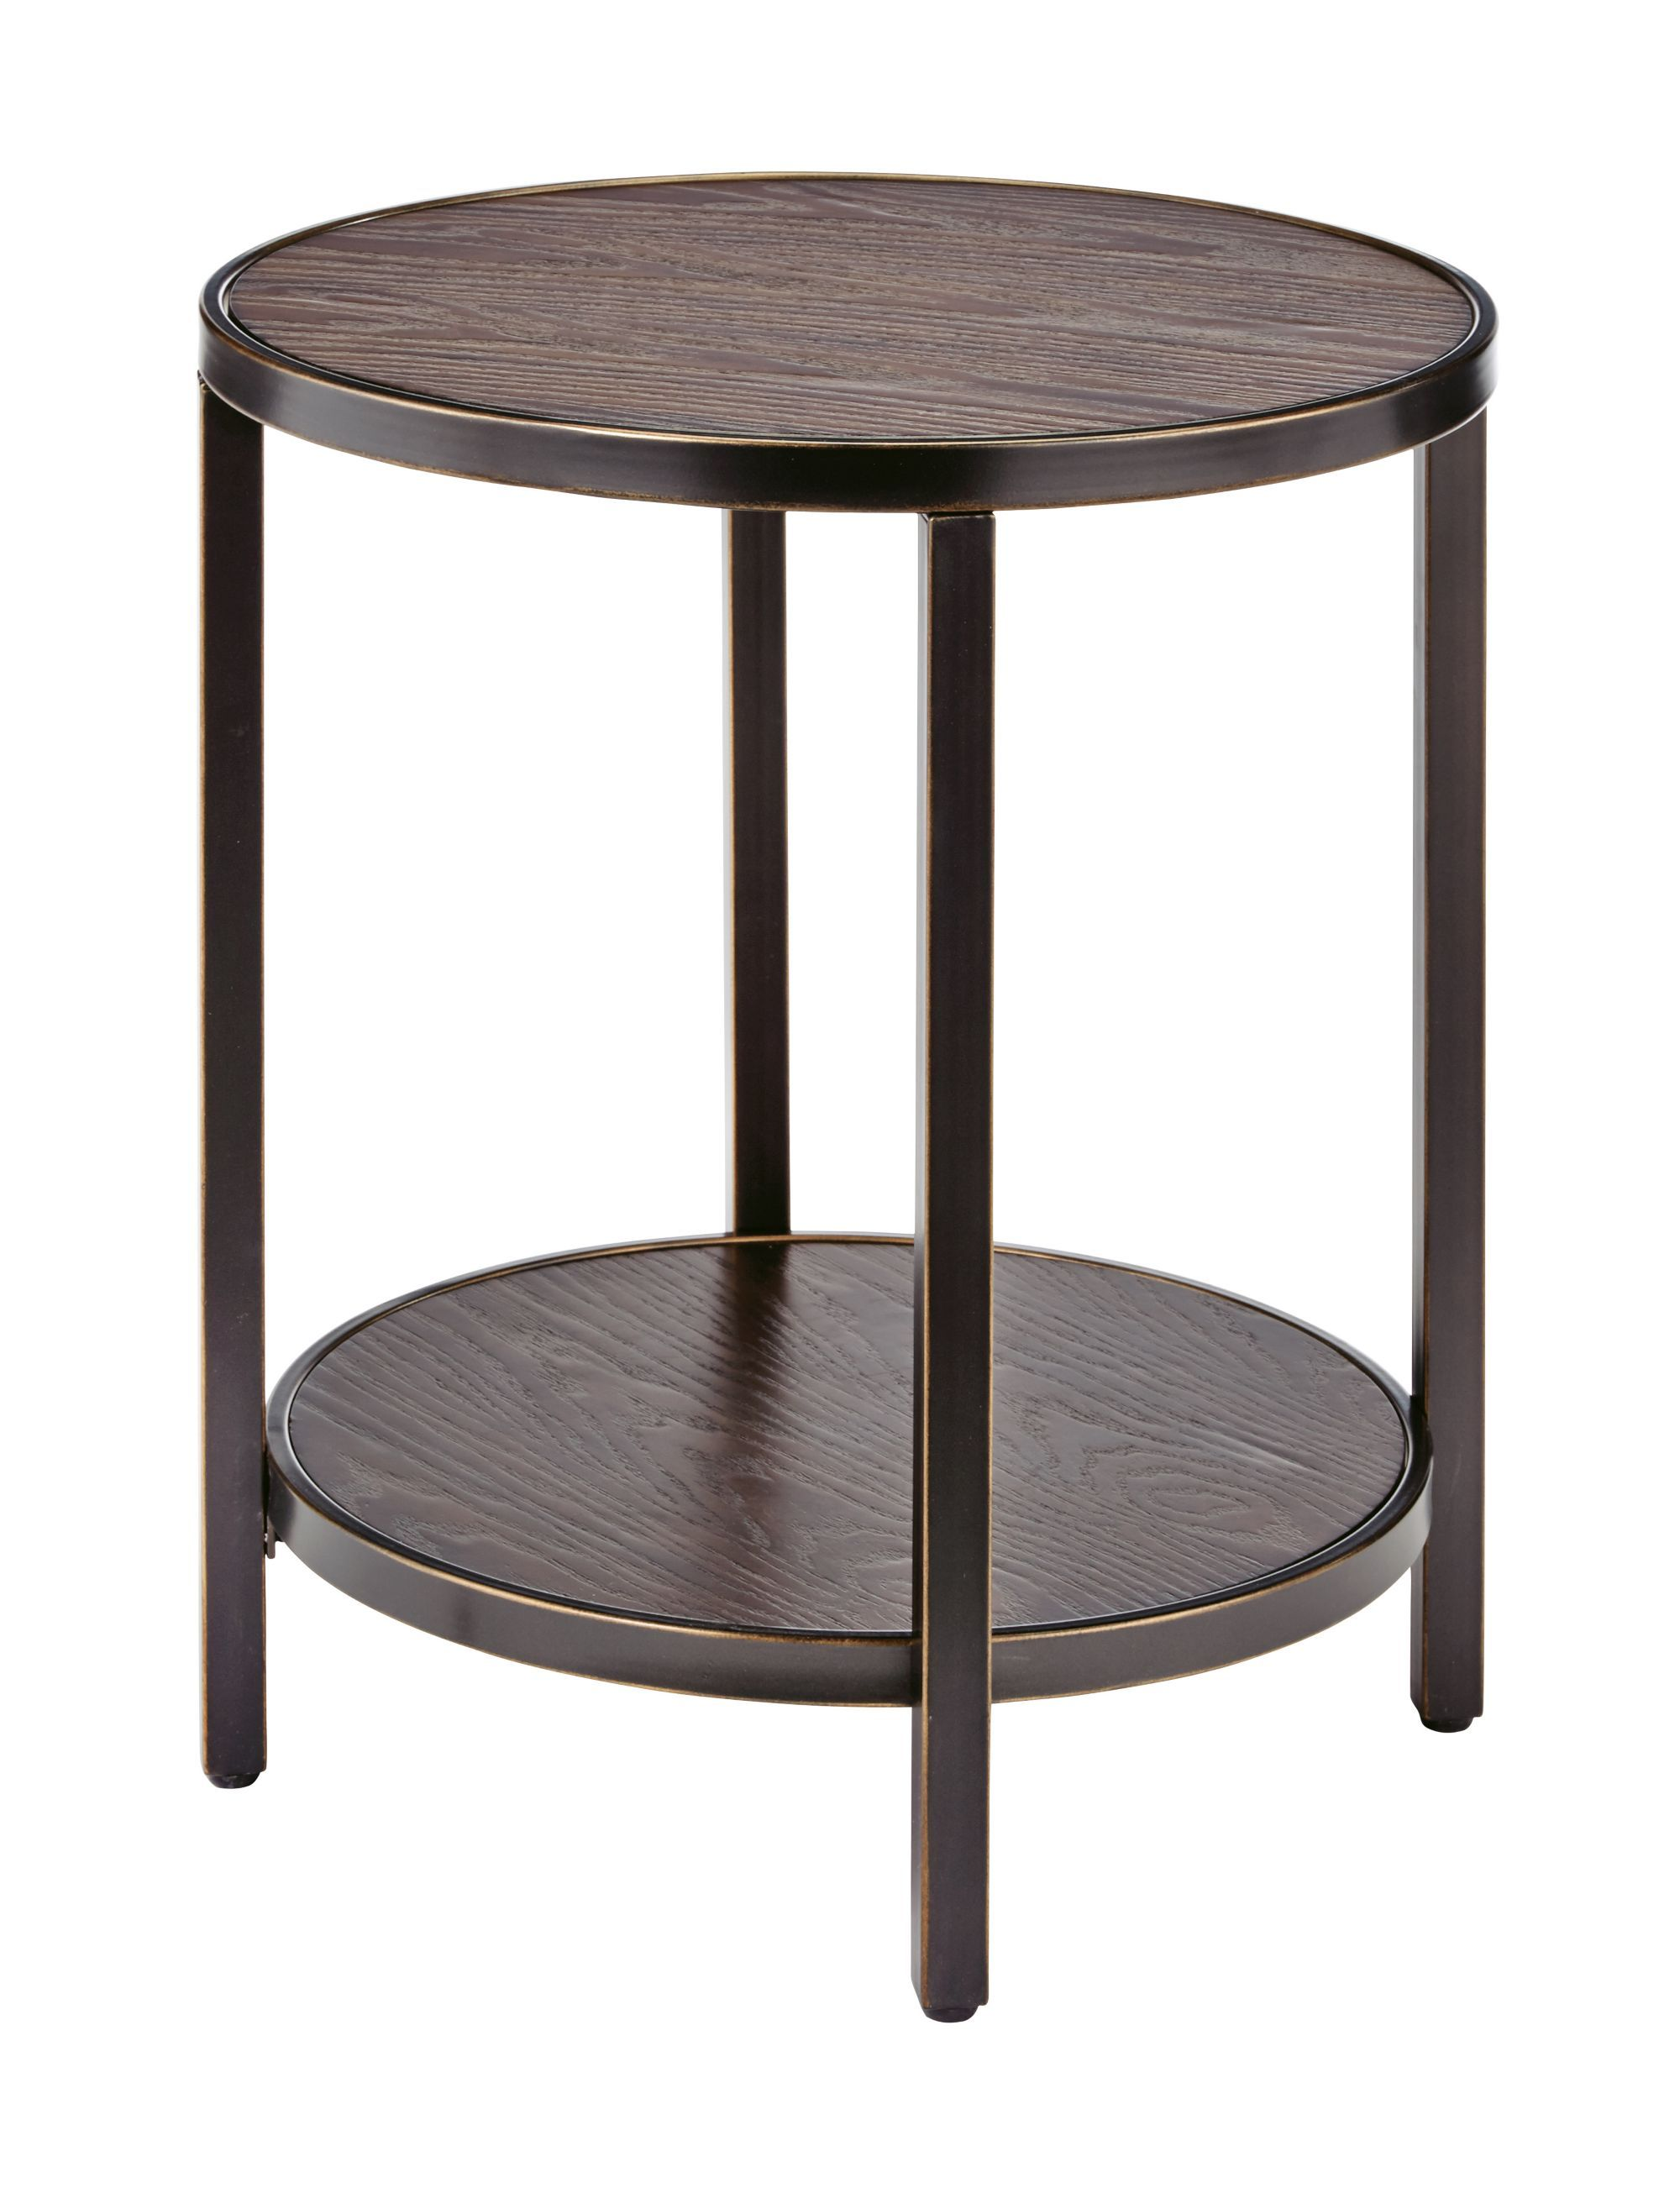 - Canadian Tire Round Metal Accent Table, Metal Accent Table, Accent Table